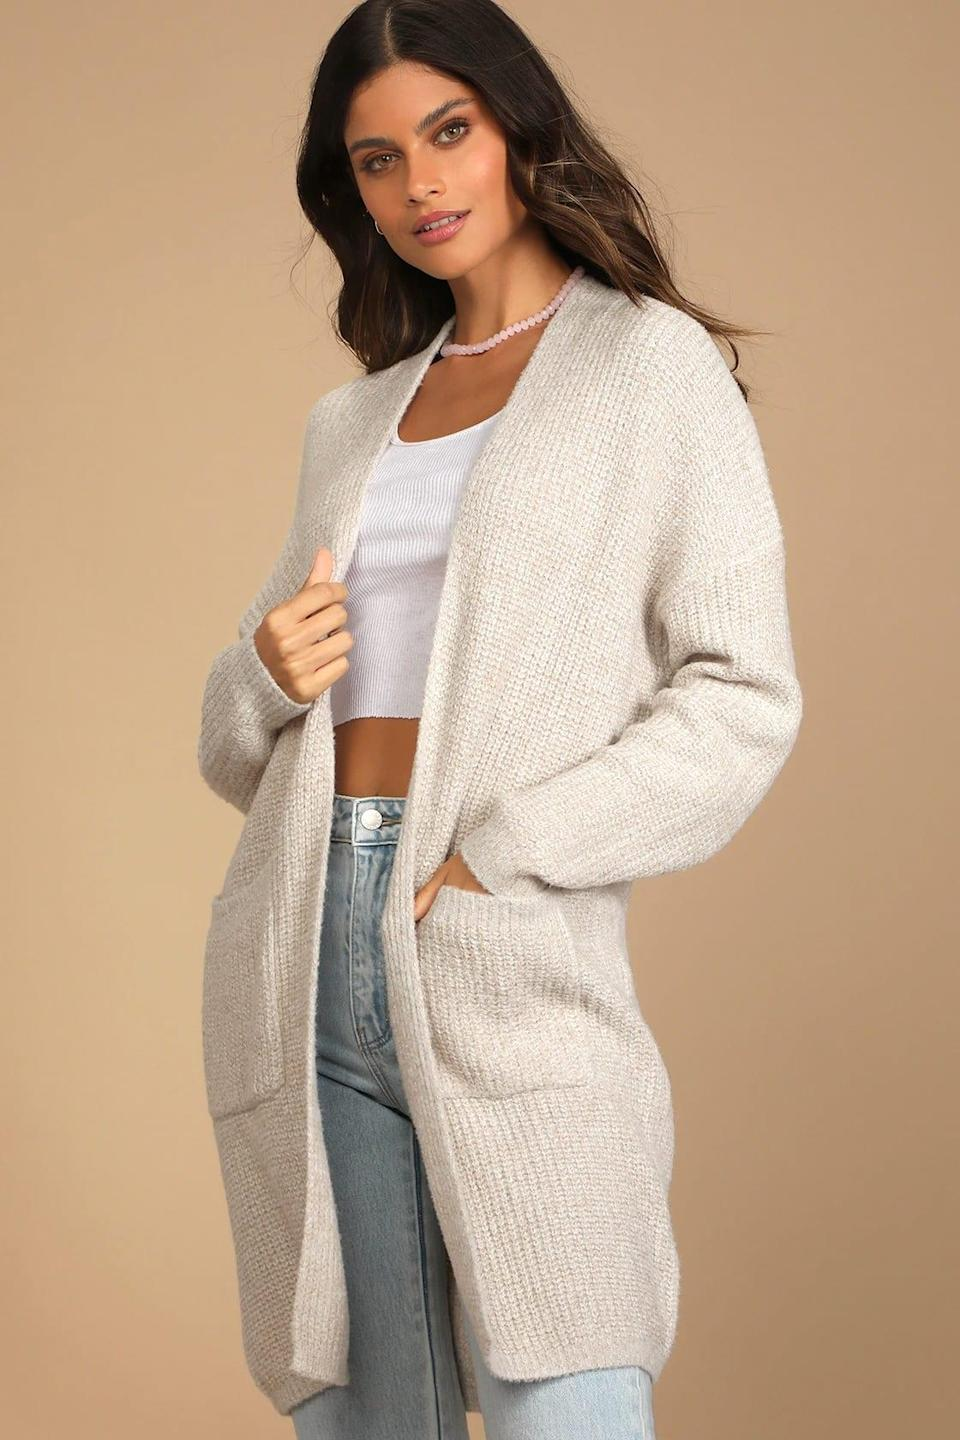 """<br><br><strong>Lulus</strong> Autumn Days Beige Knit Cardigan Sweater, $, available at <a href=""""https://go.skimresources.com/?id=30283X879131&url=https%3A%2F%2Fwww.lulus.com%2Fproducts%2Fautumn-days-beige-knit-cardigan-sweater%2F1545116.html"""" rel=""""nofollow noopener"""" target=""""_blank"""" data-ylk=""""slk:Lulus"""" class=""""link rapid-noclick-resp"""">Lulus</a>"""